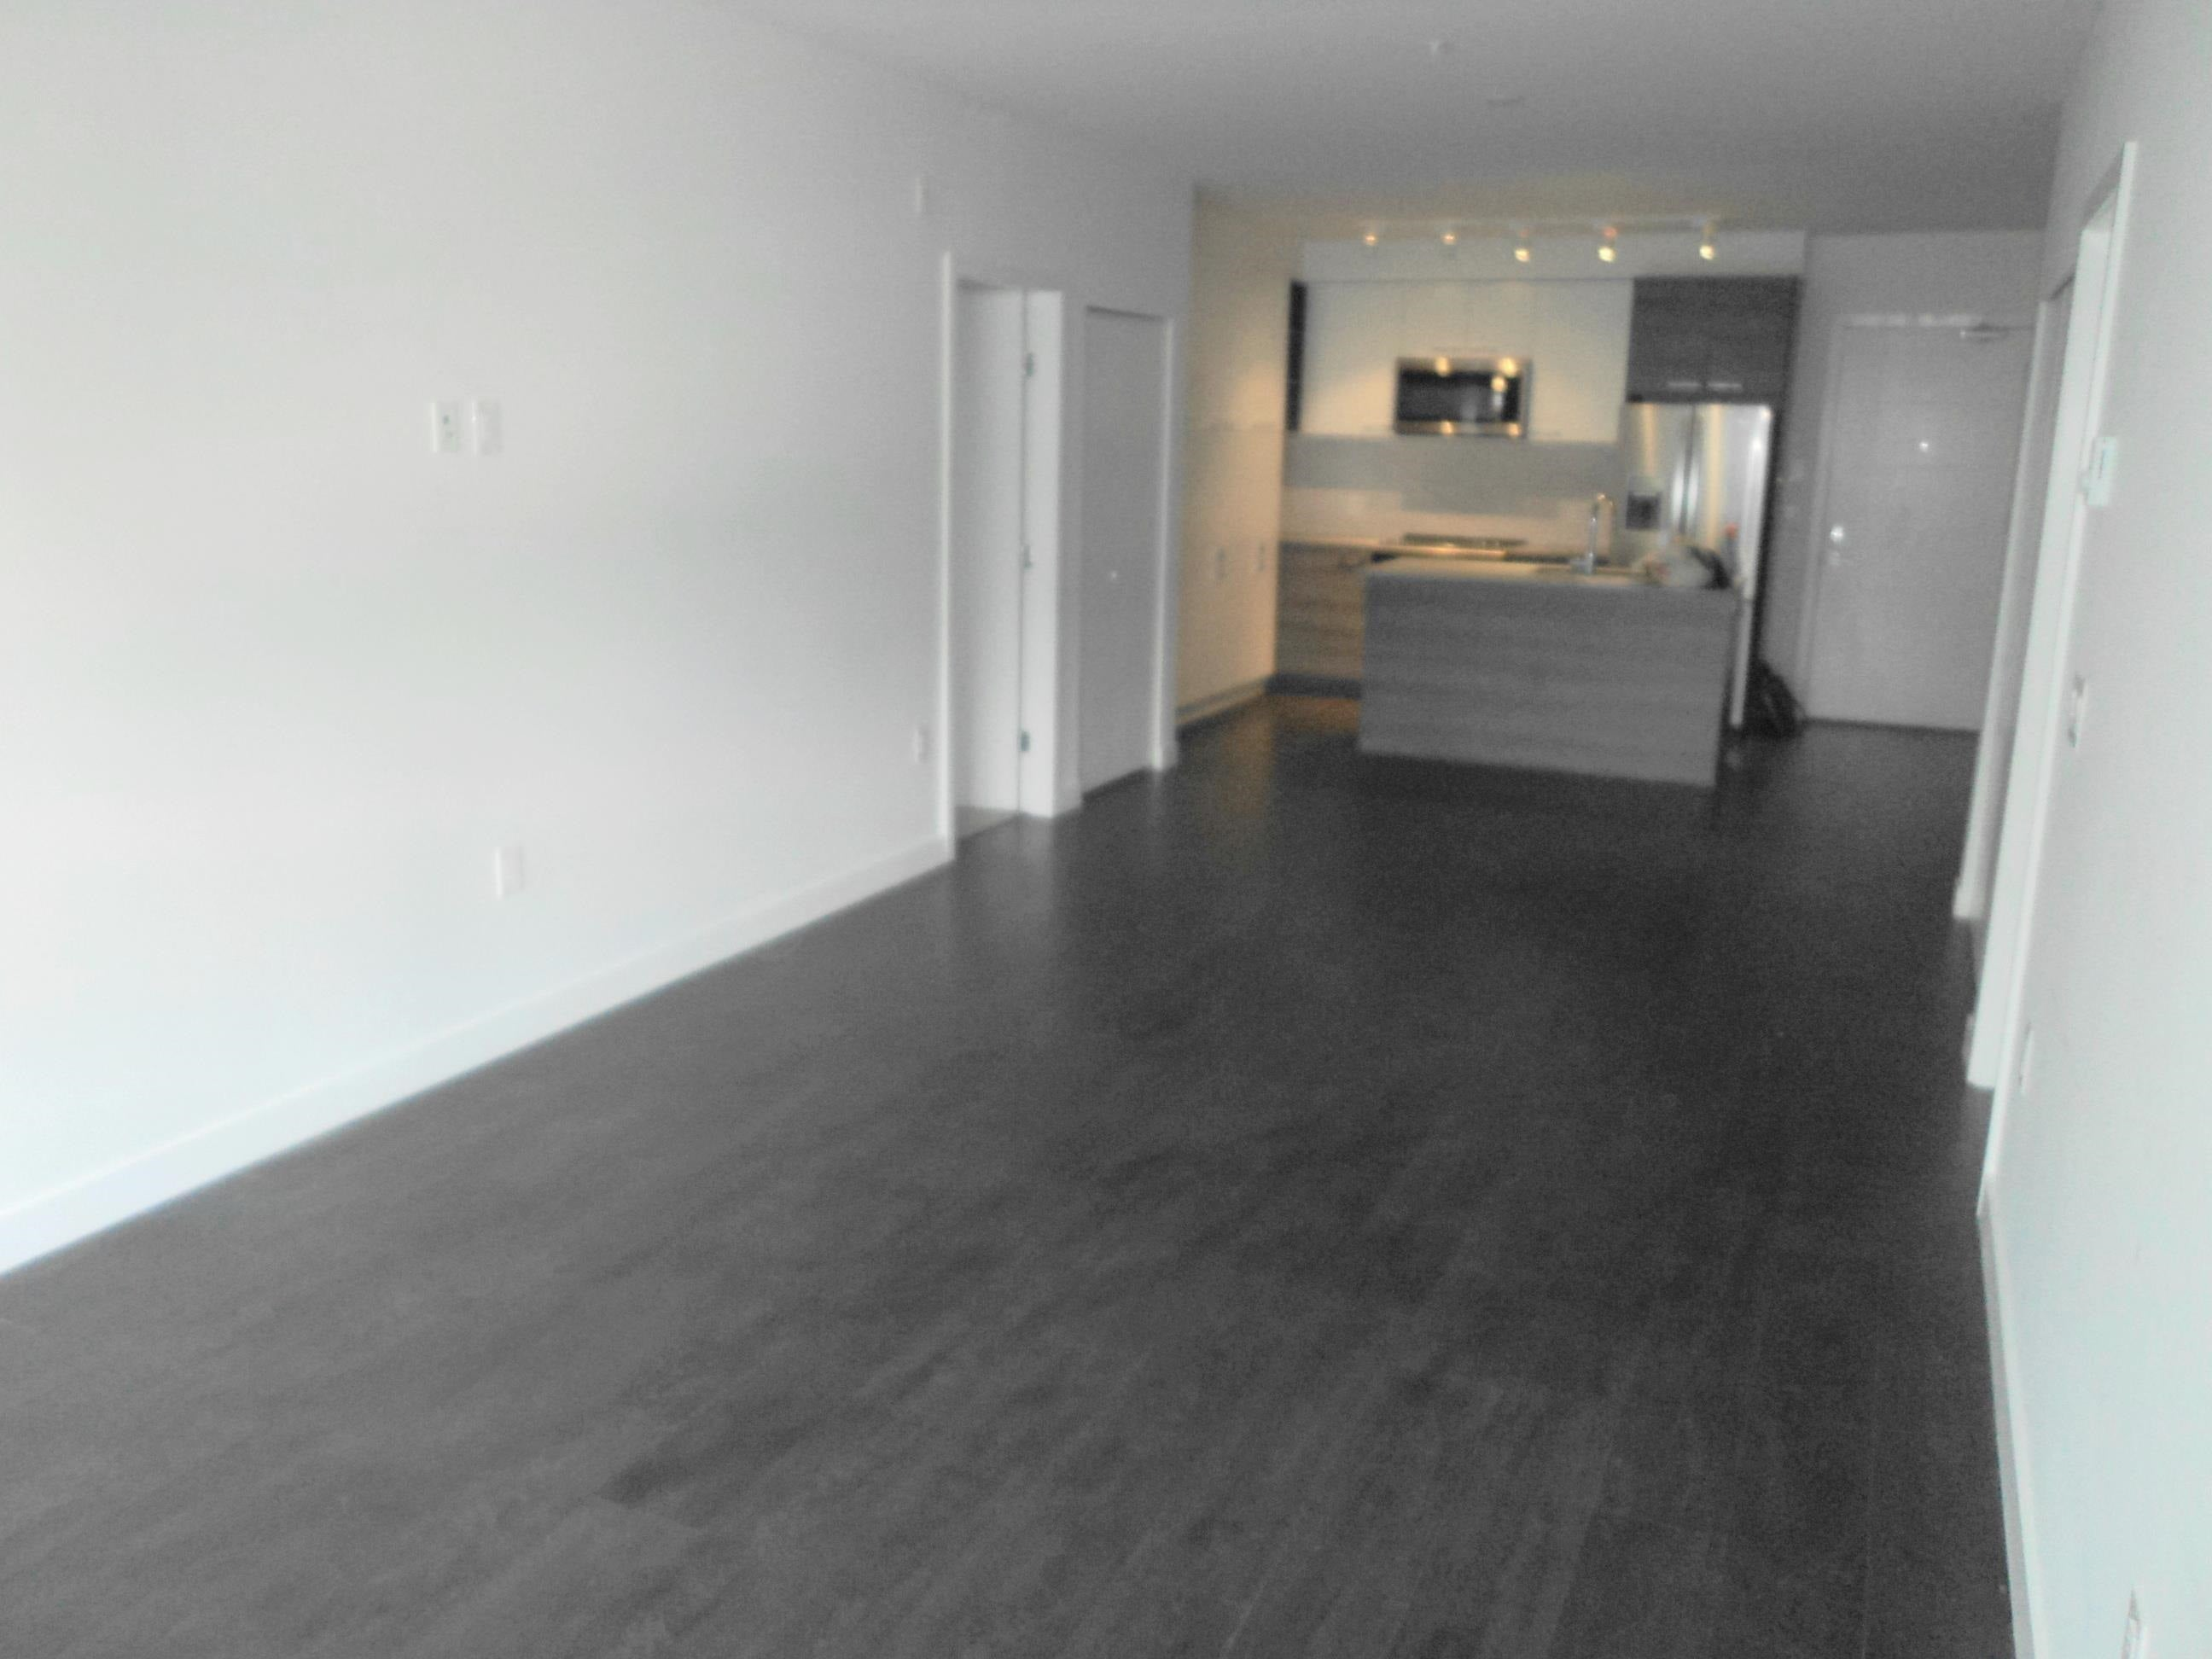 207 10581 140 STREET - Whalley Apartment/Condo for sale, 2 Bedrooms (R2615061) - #5